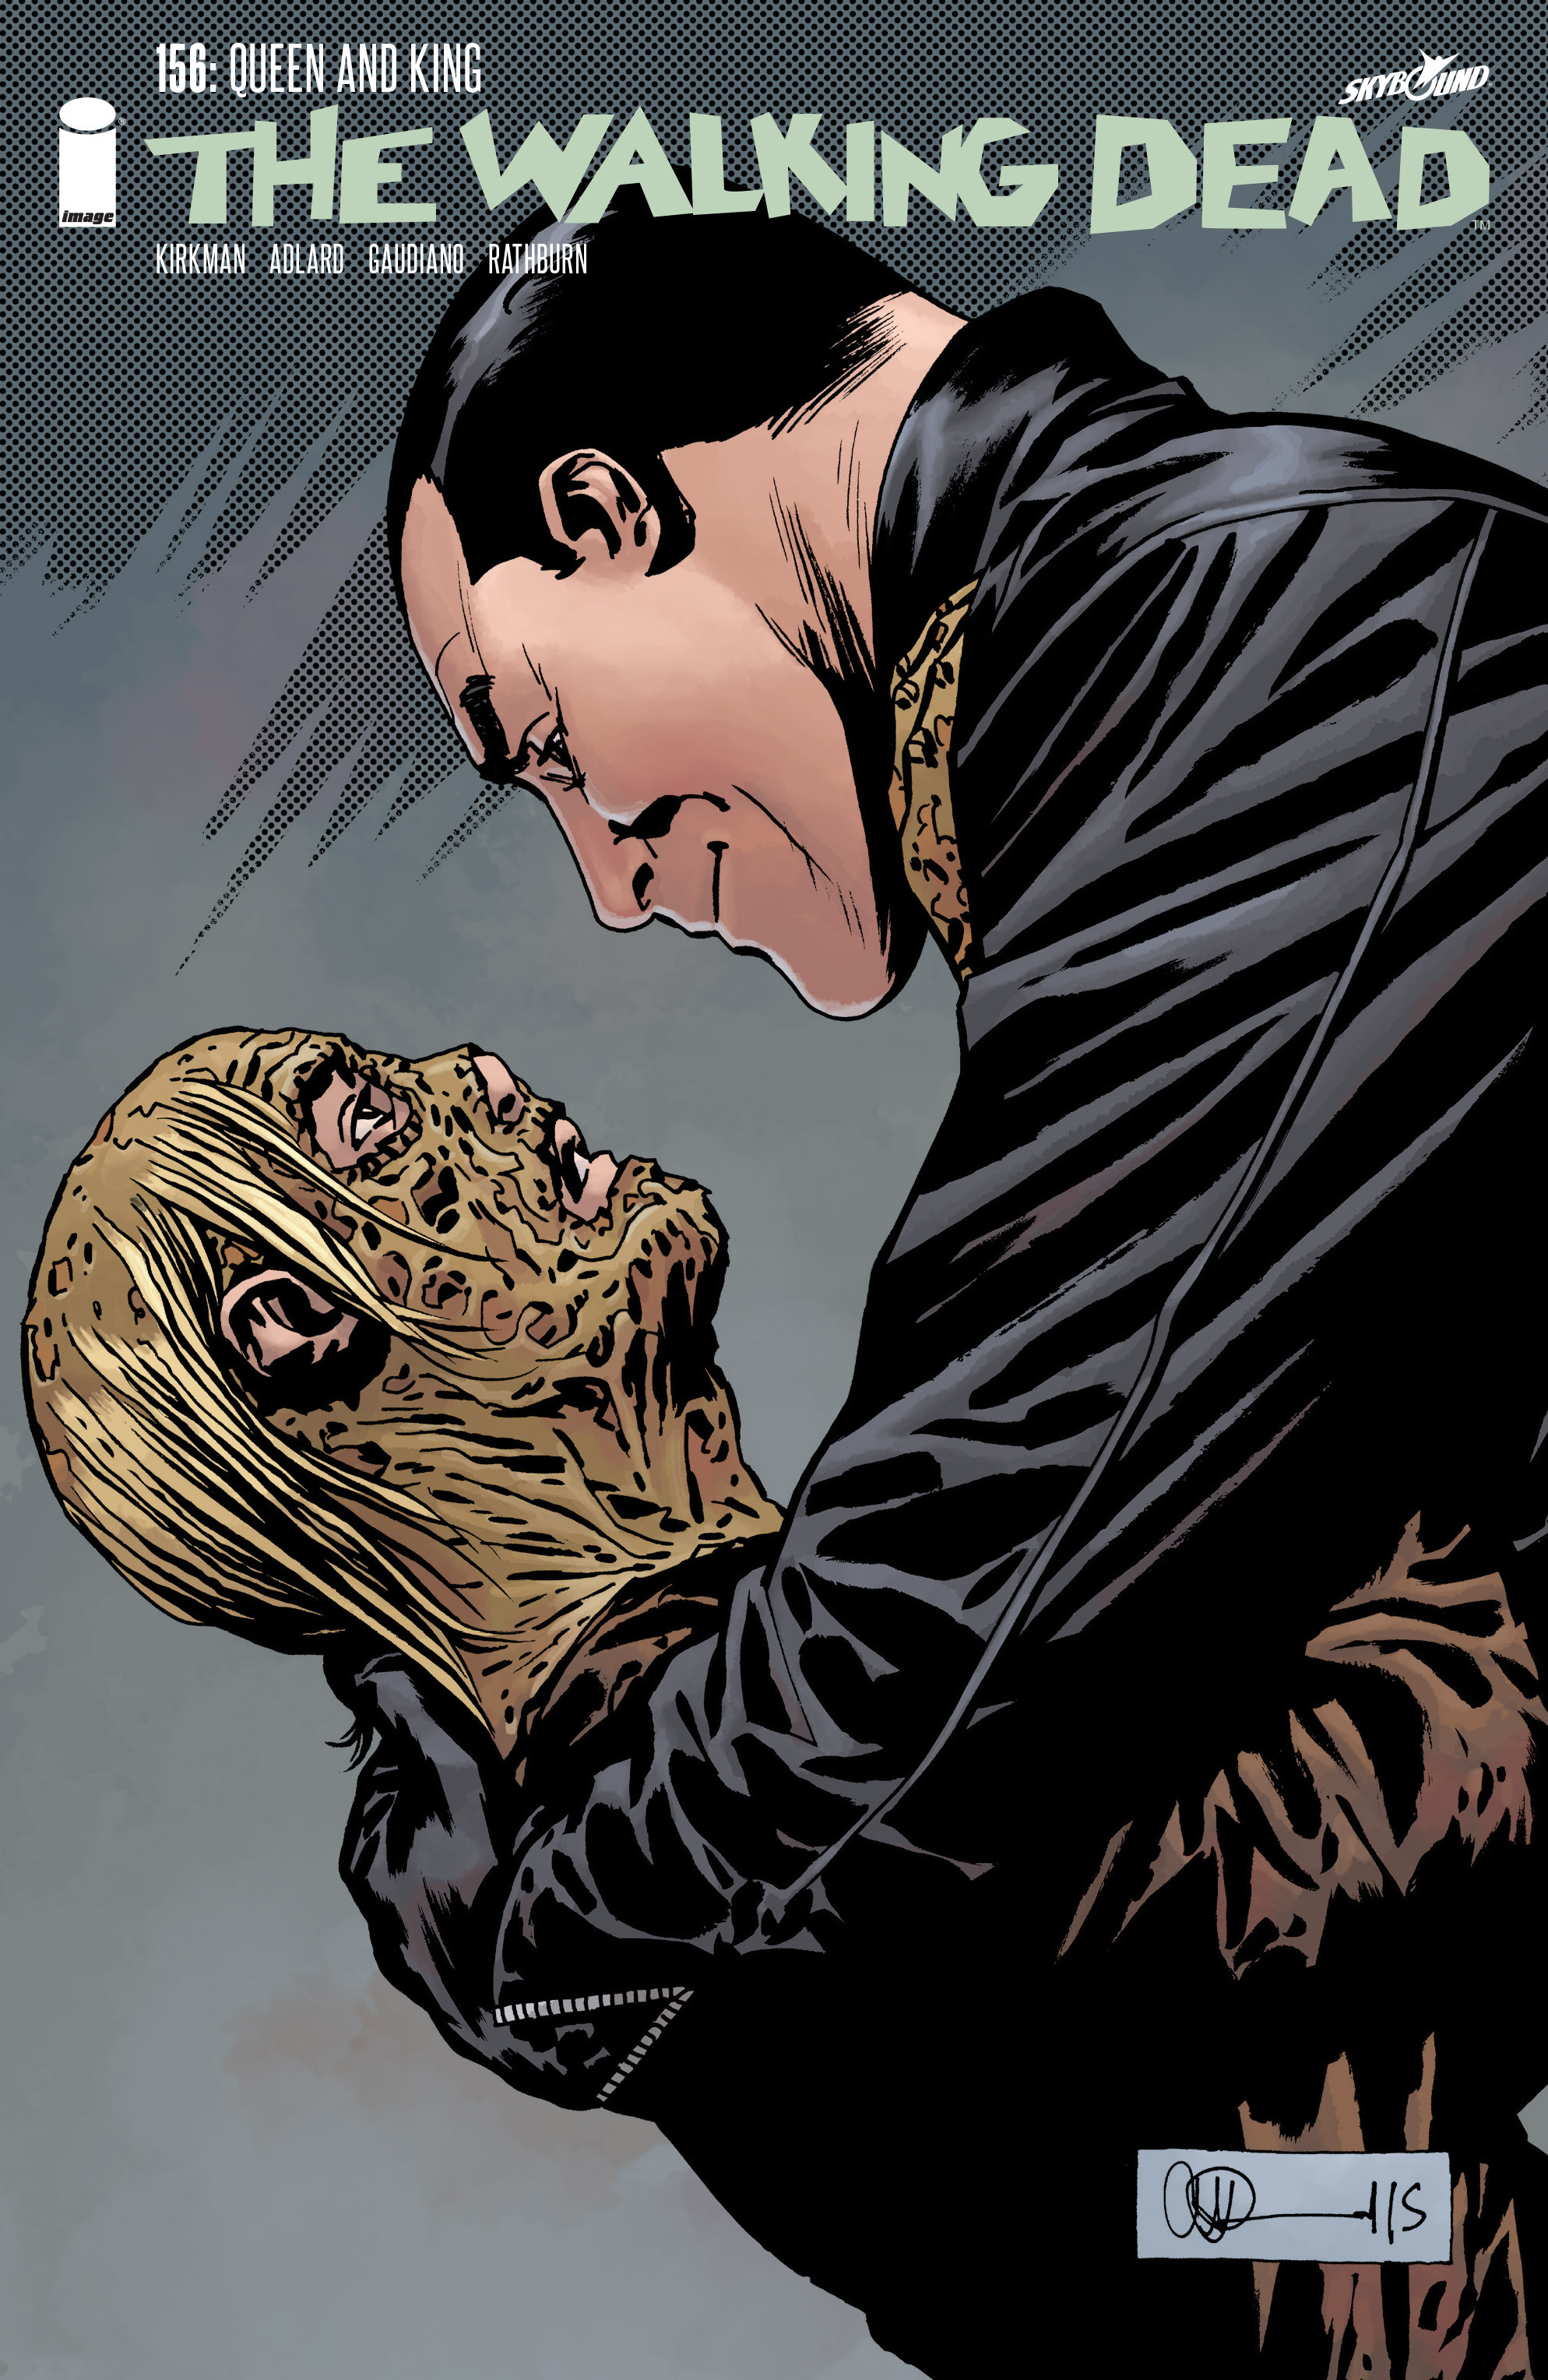 The Walking Dead 156 Page 1